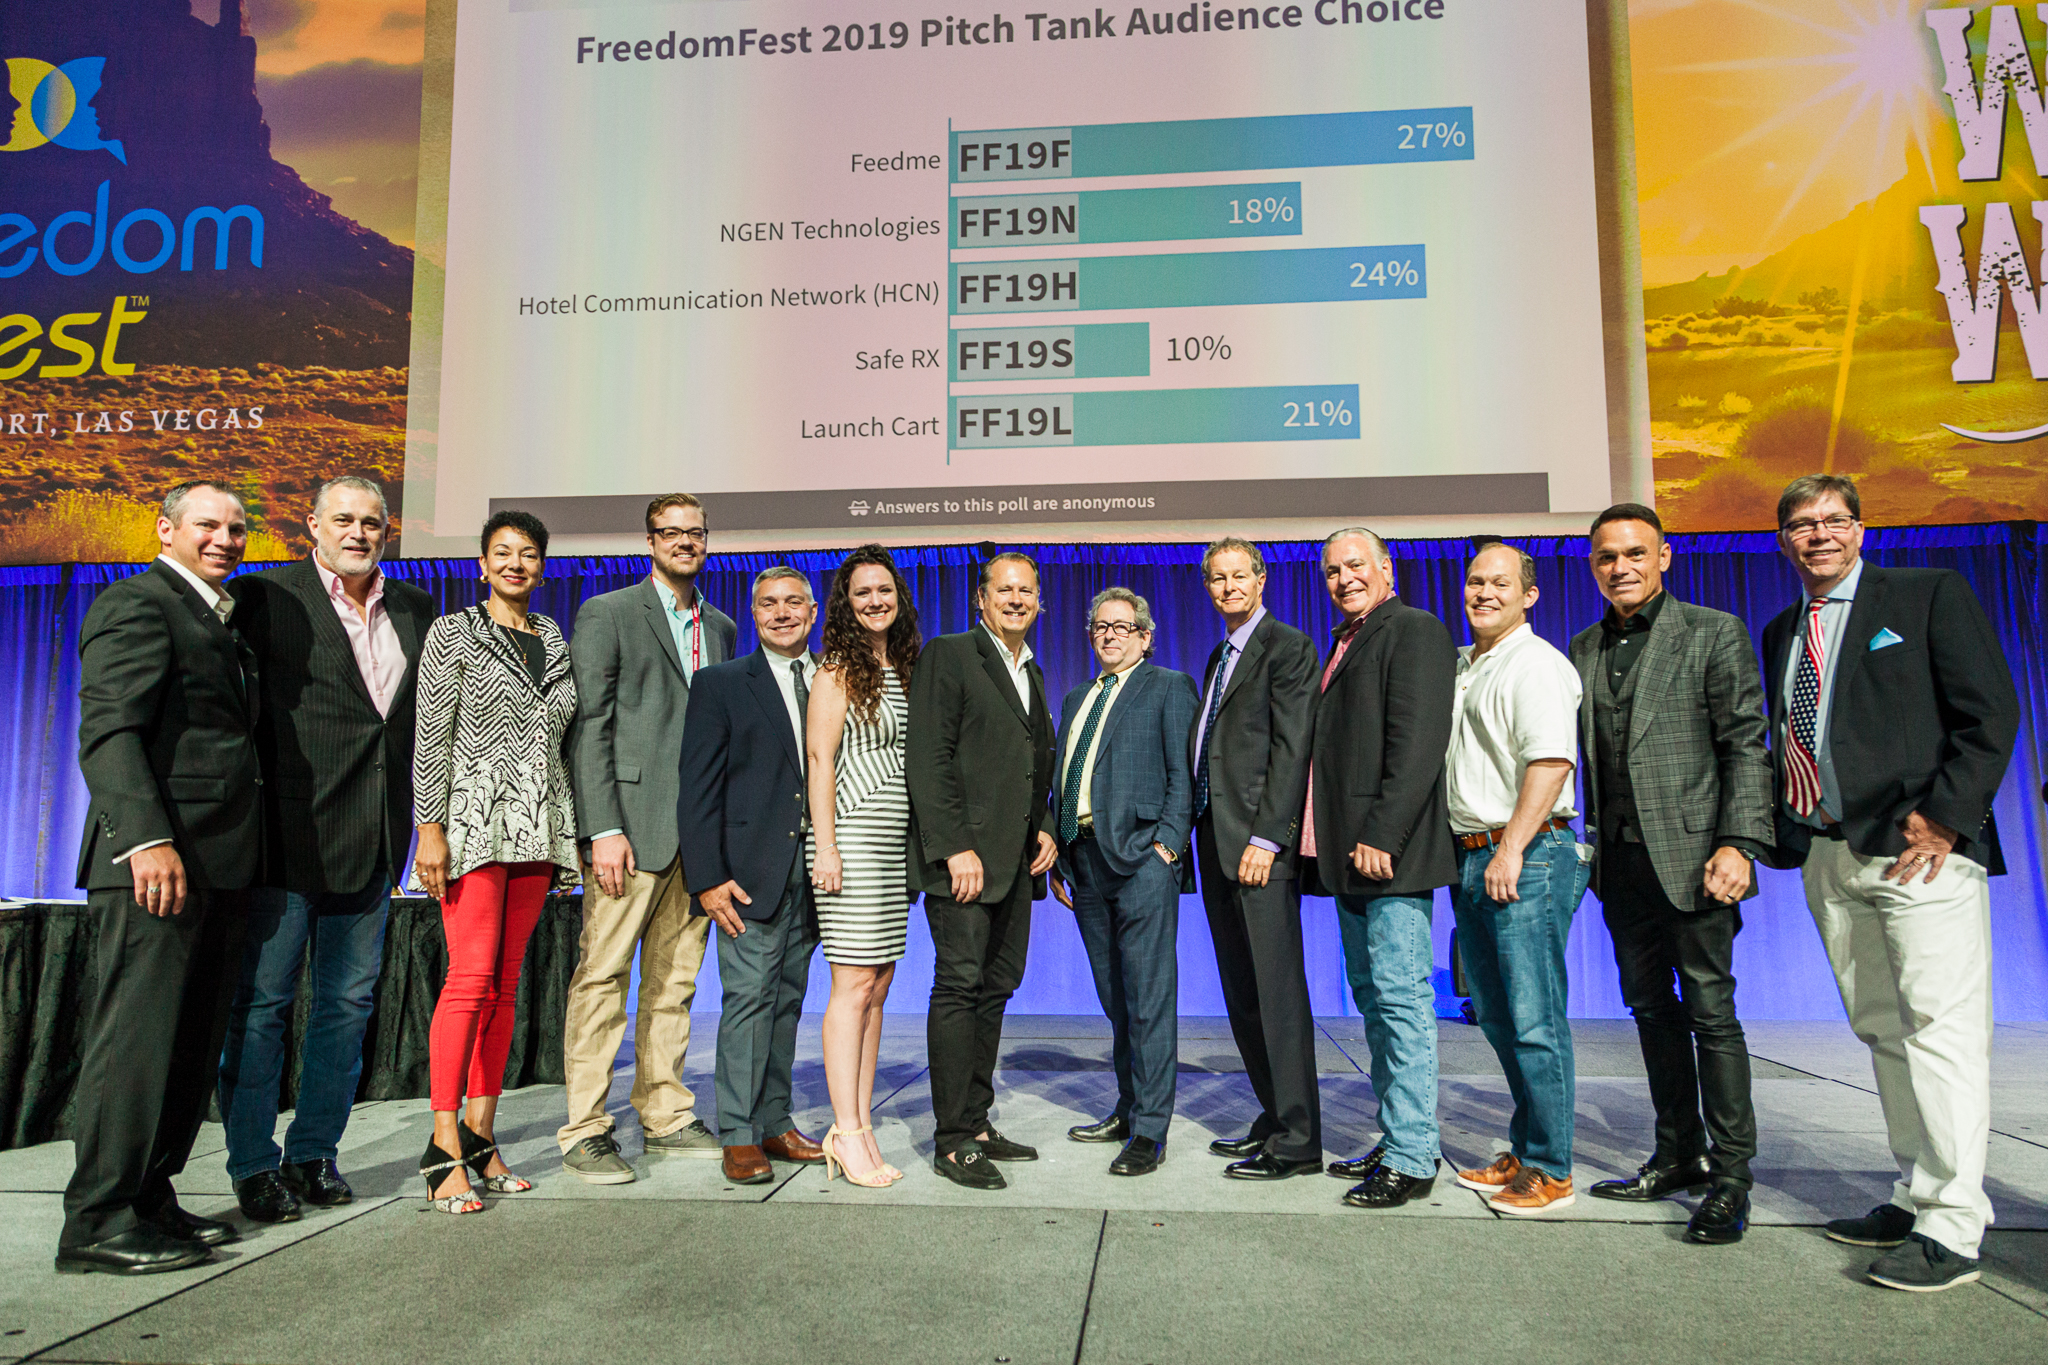 Feedme's winning development team with Pitch Tank judges and finalists in front of the leaderboard. (Photo by Jonathan Williams/NationalPhotography.us)